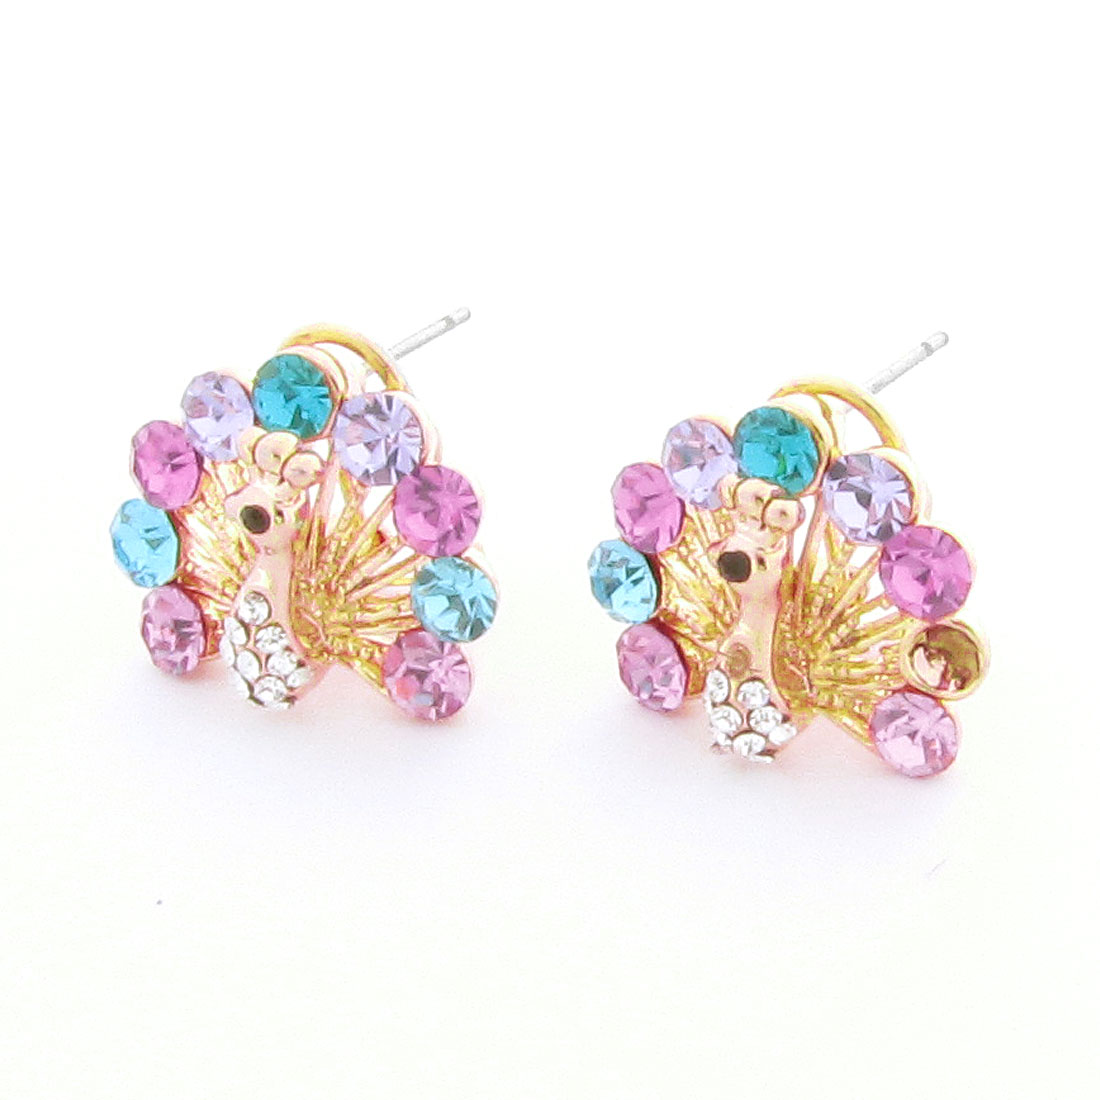 Colorful Rhinestone Decor Peacock Shaped Metal Clip Earrings for Lady